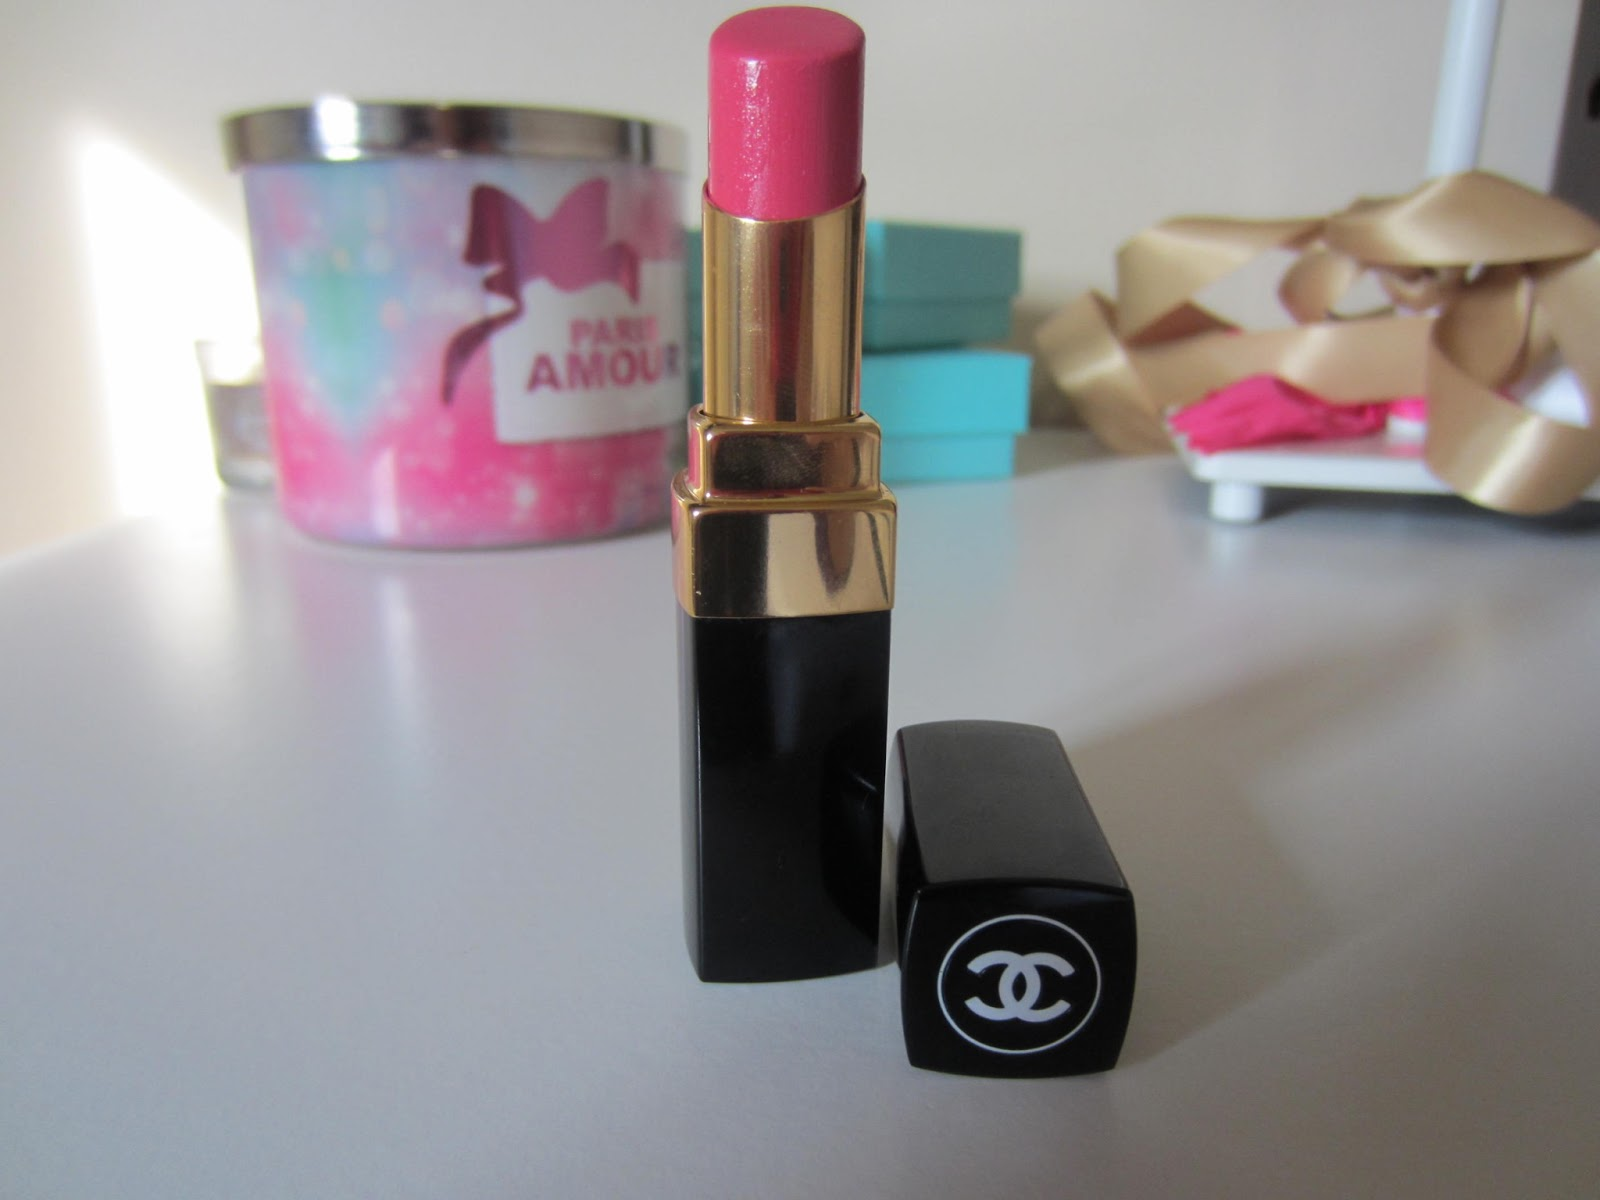 Chanel Rouge Coco Shine In Romance Naghmeh Lesani